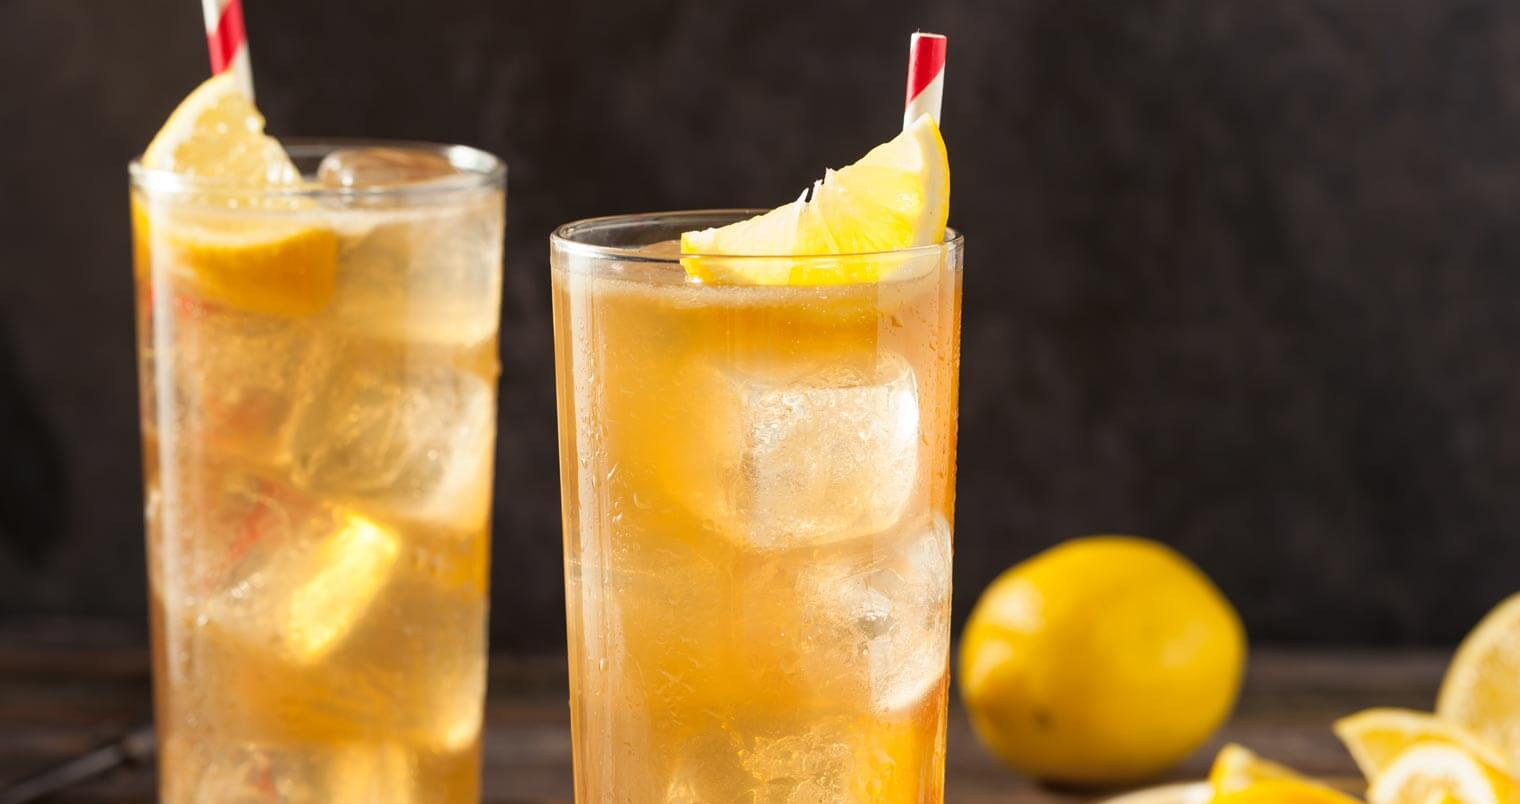 long island iced tea, cocktails with lemon garnish, featured image